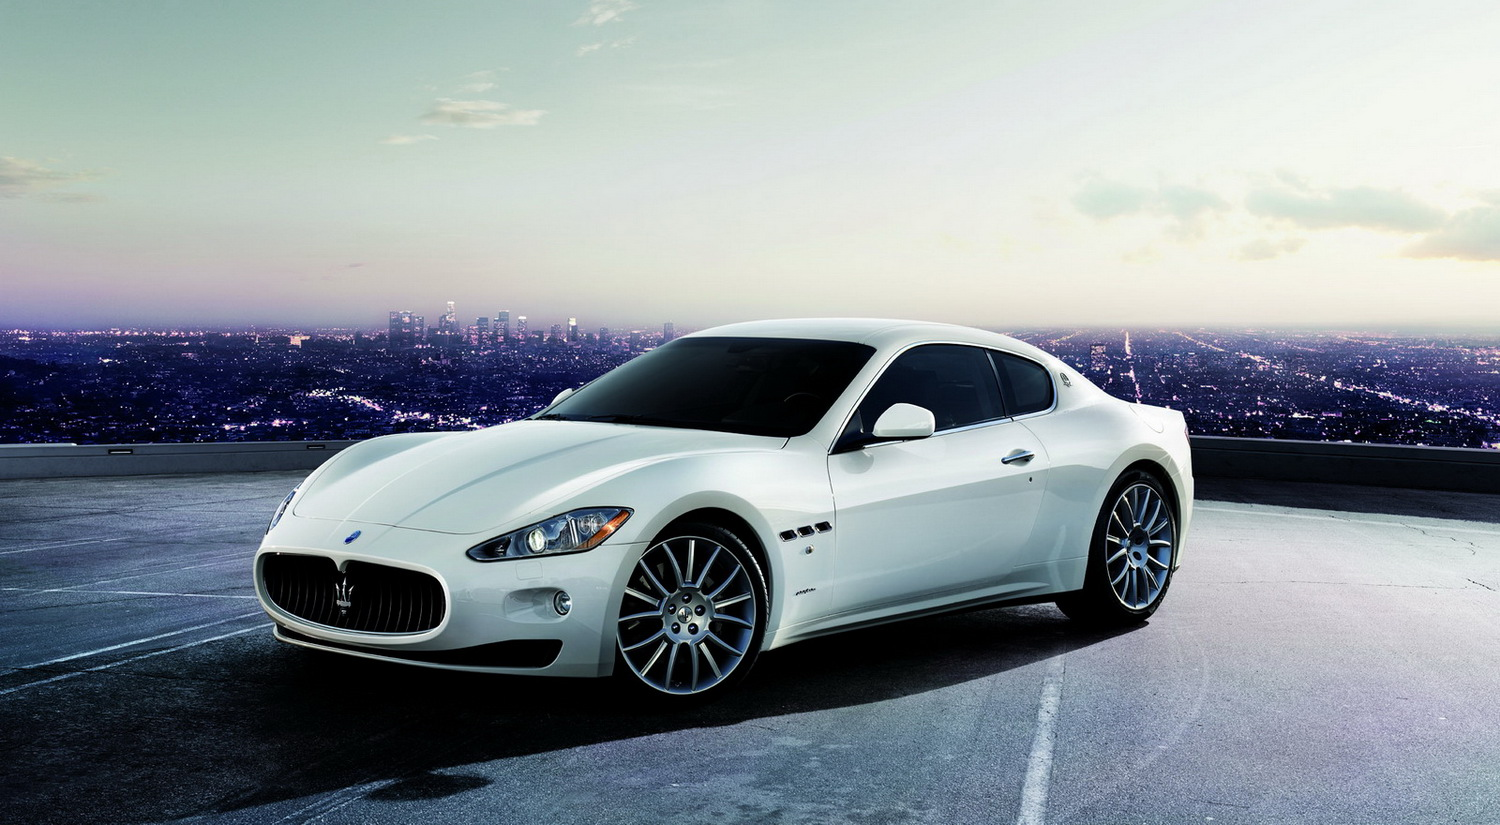 Cars Wallpapers Maserati gran turismo